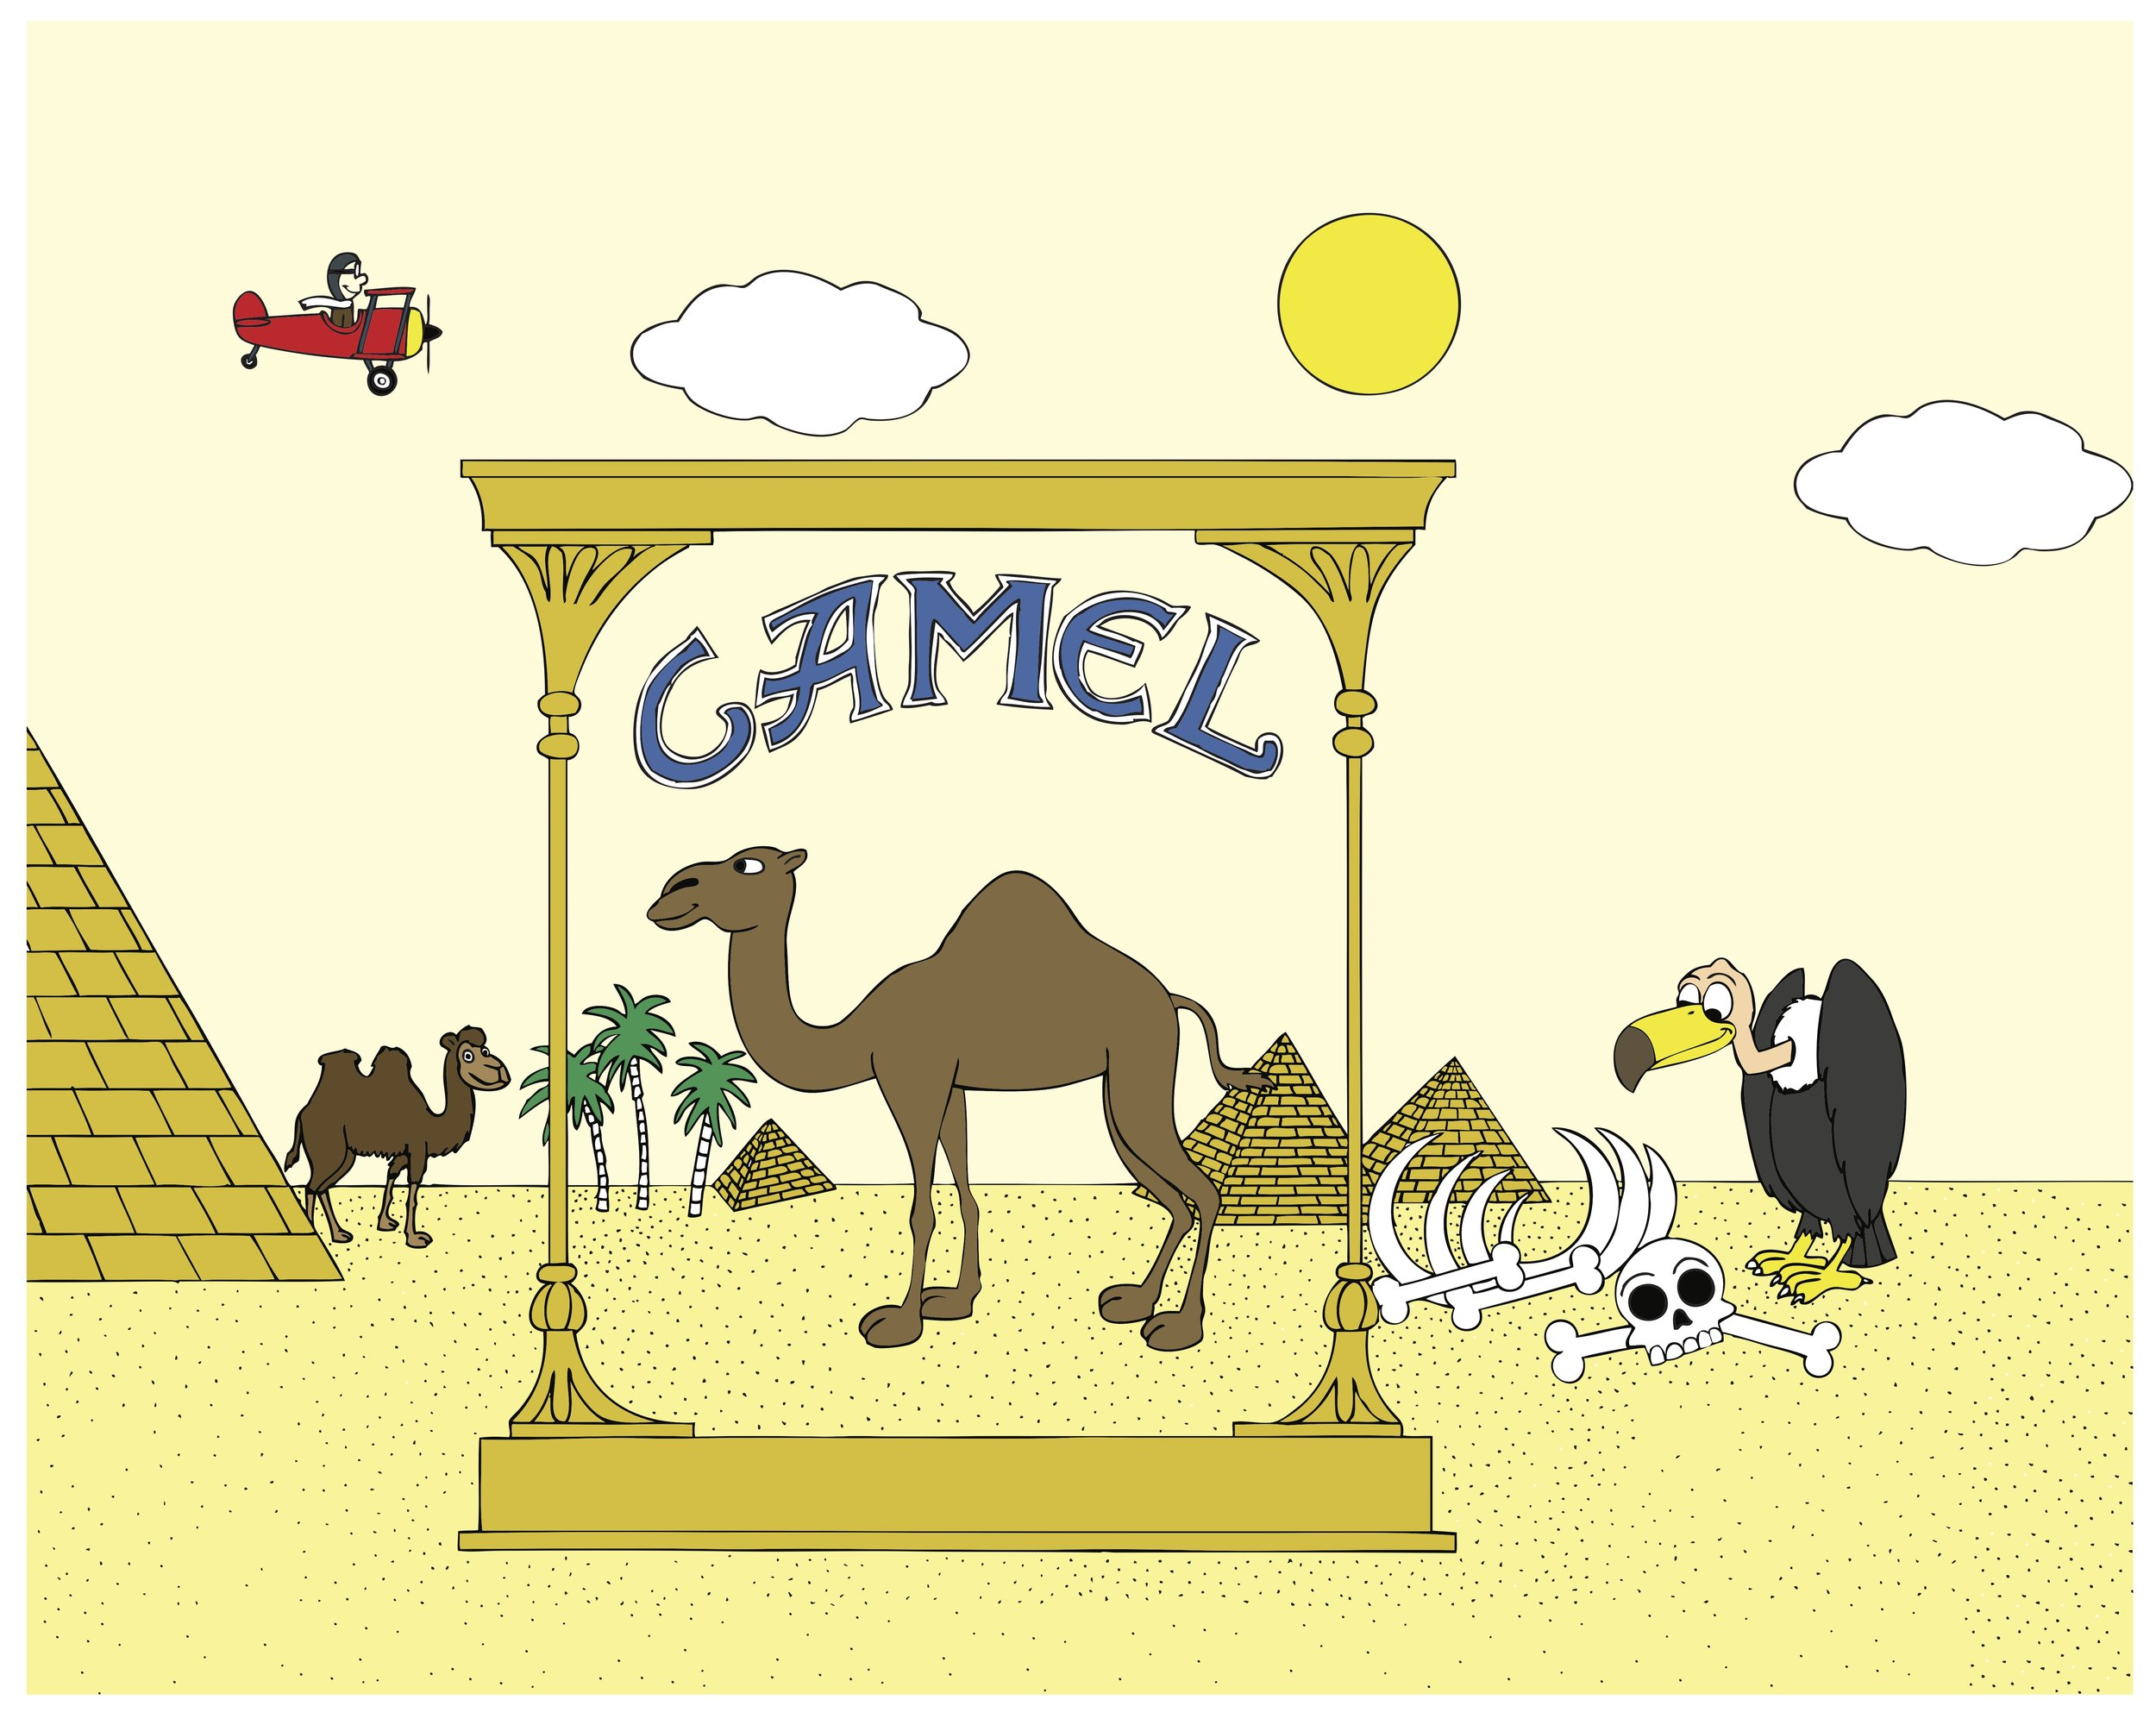 camel in egypt color 16x20.jpg